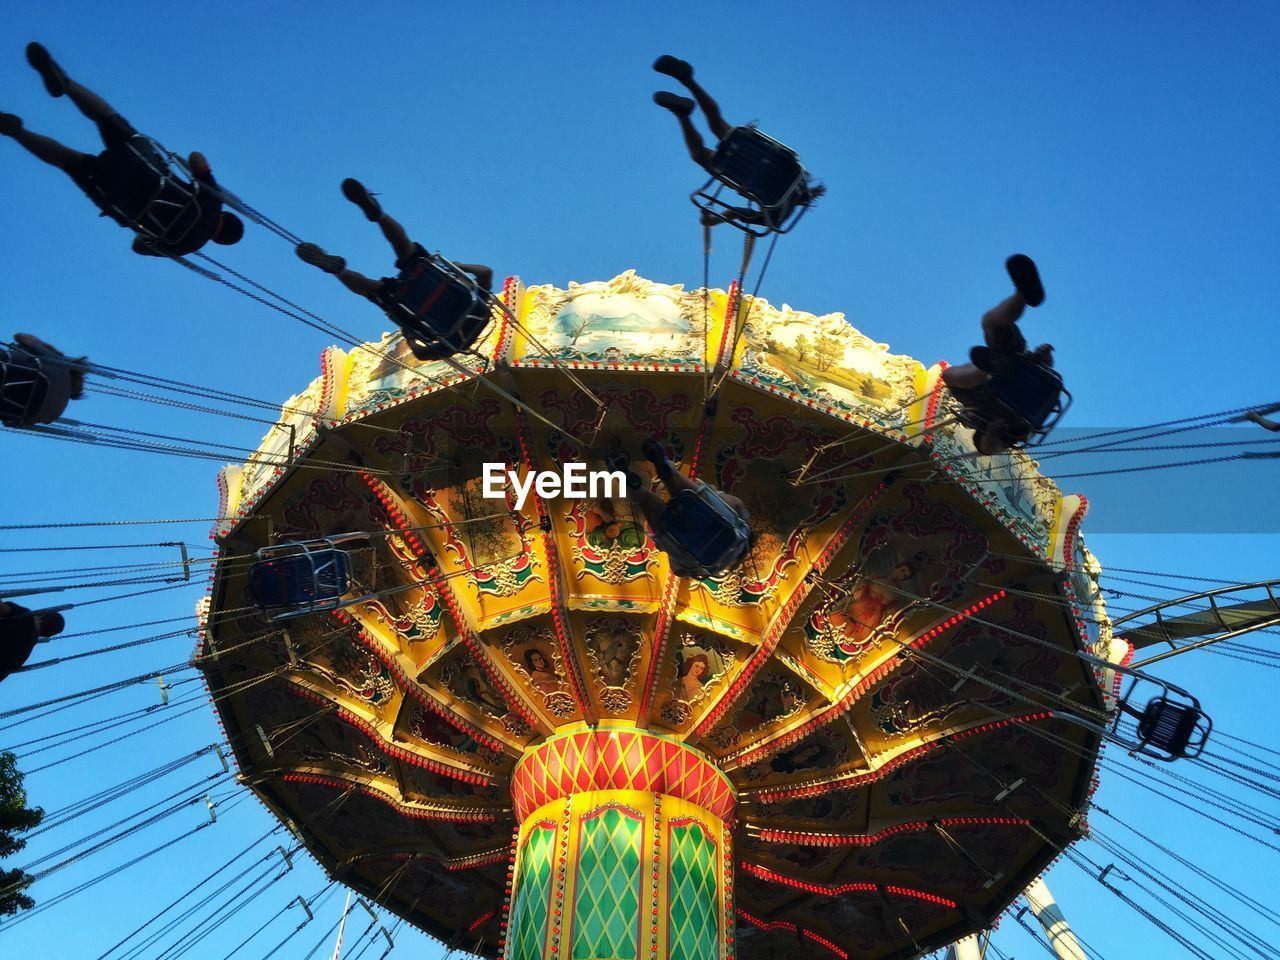 Low angle view of chain swing ride in amusement park